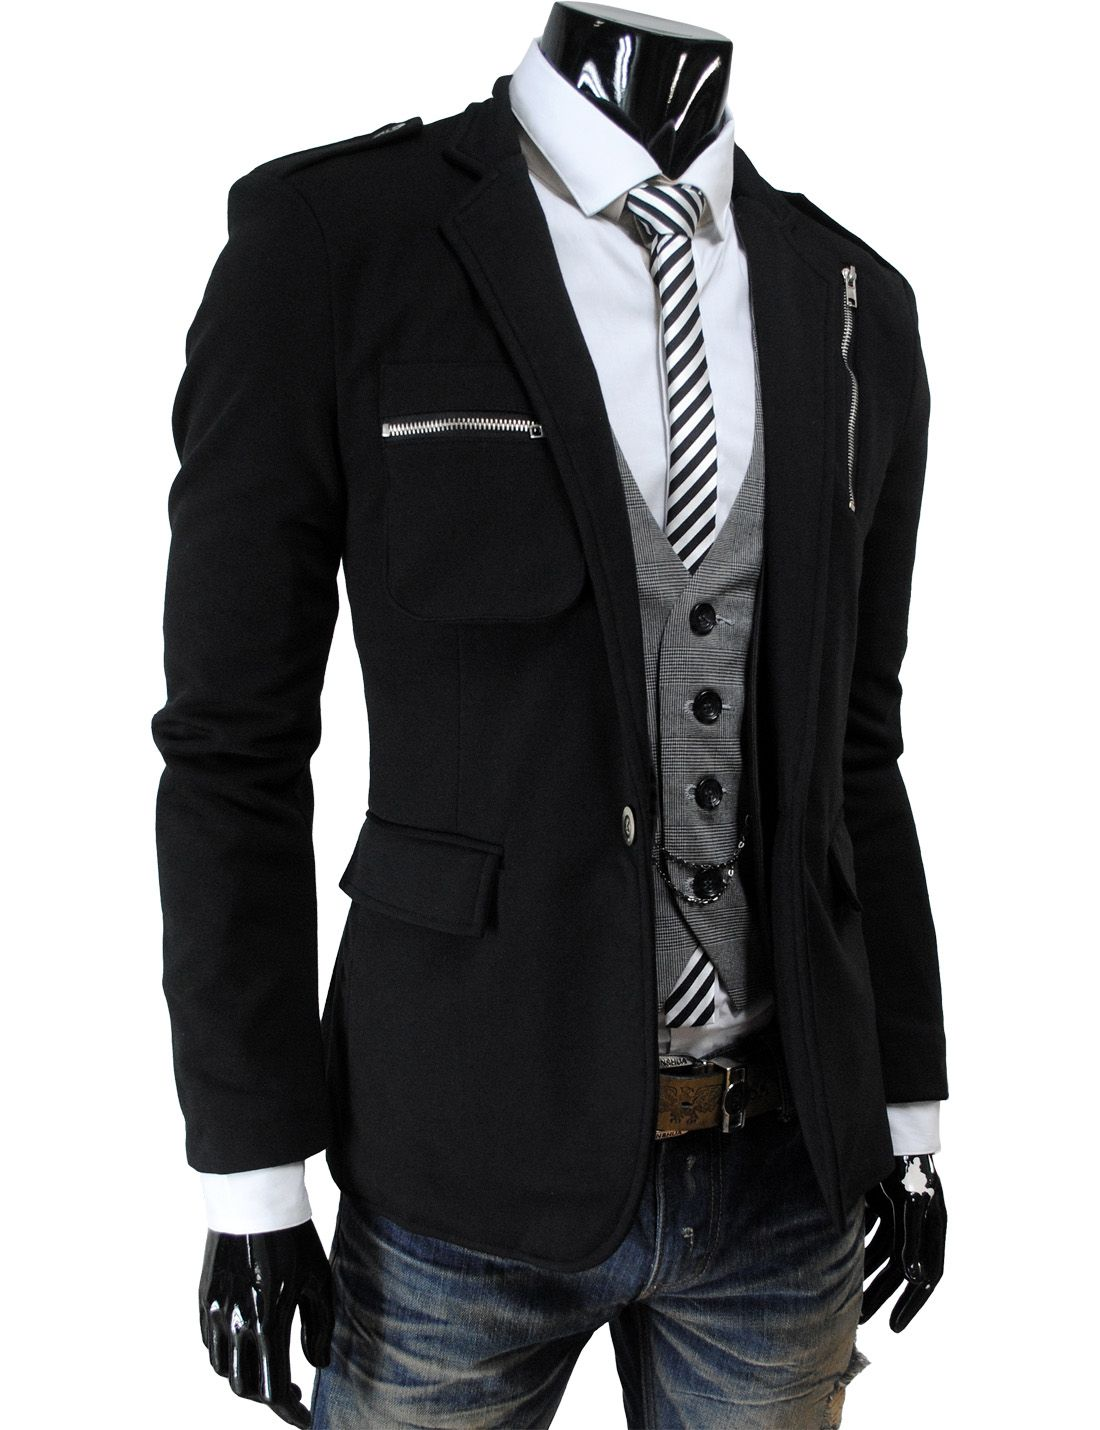 Mens Casual Zipper Point Slim Fit One Button Stretchy Blazer Jacket Mens Fashion Coat Mens Casual Suits Men Casual [ 1430 x 1100 Pixel ]